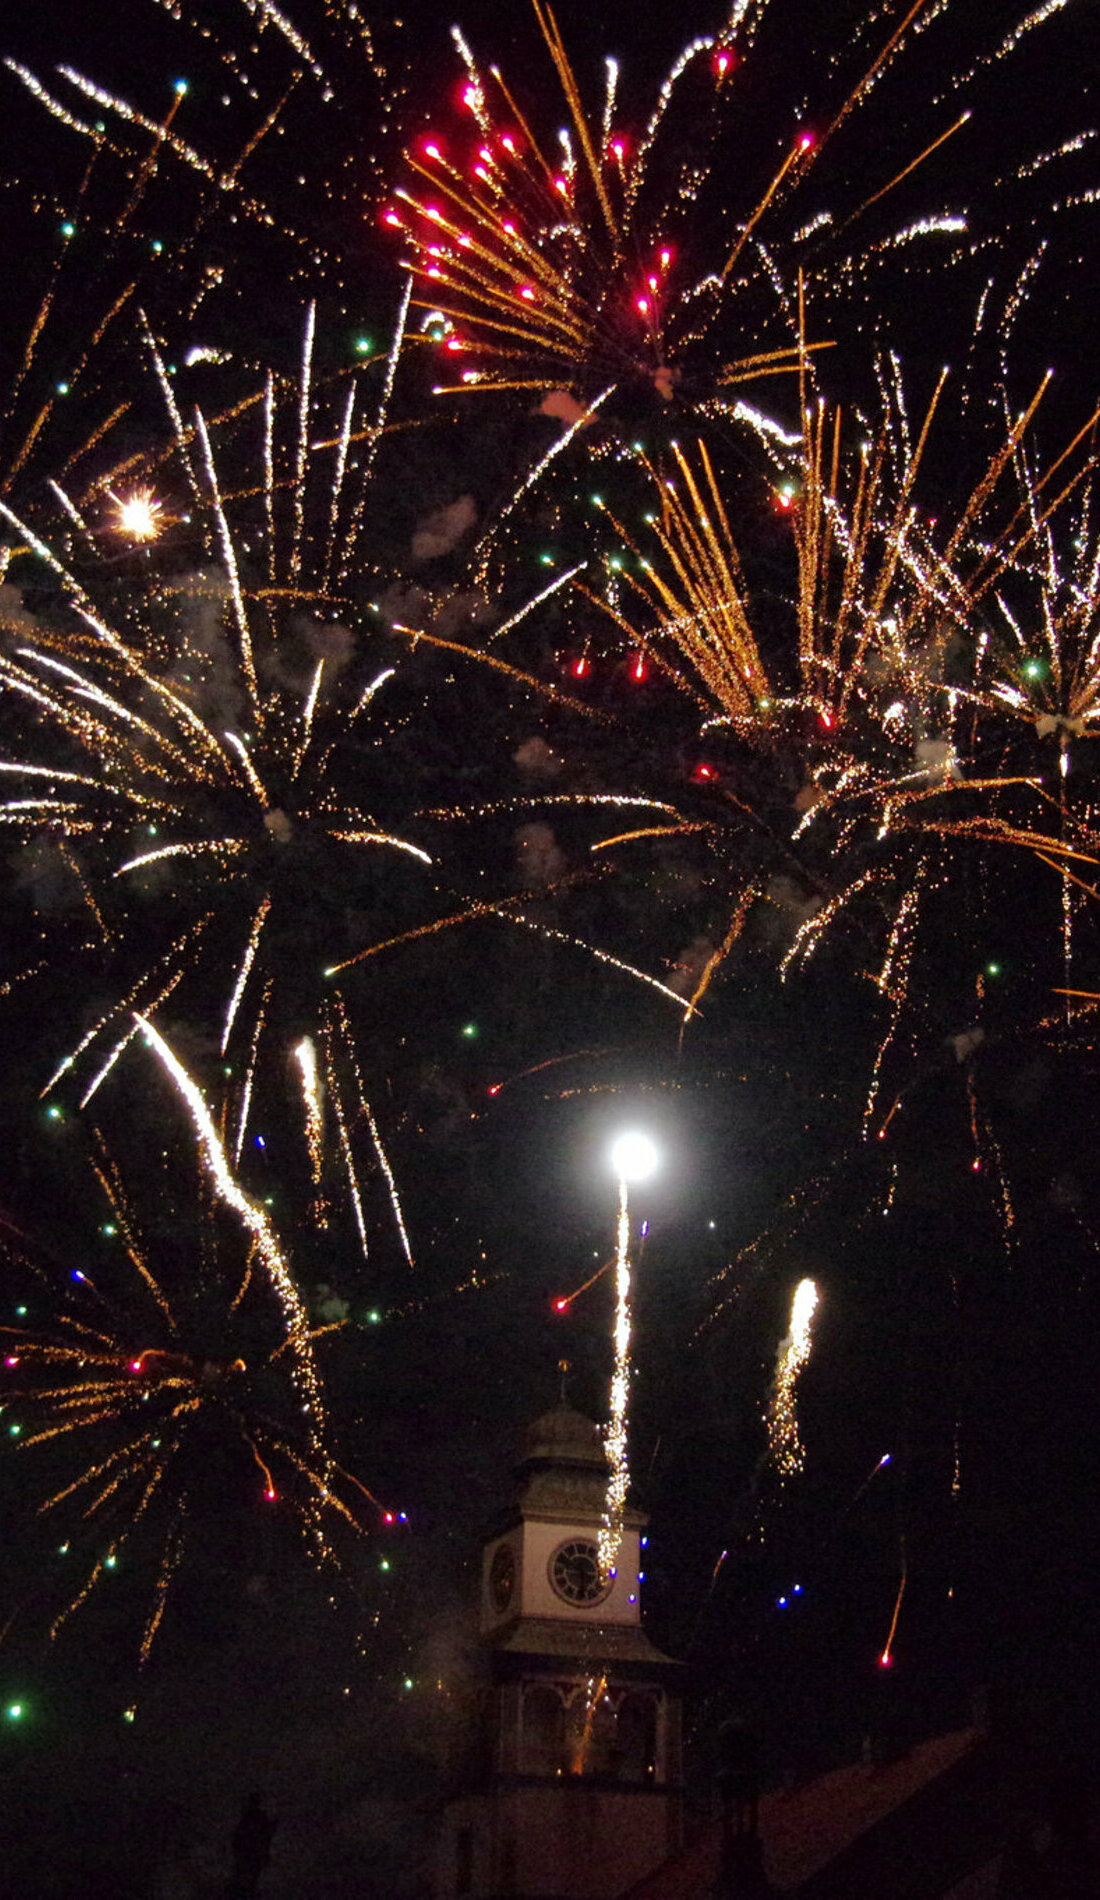 A July 4th Fireworks Spectacular live event